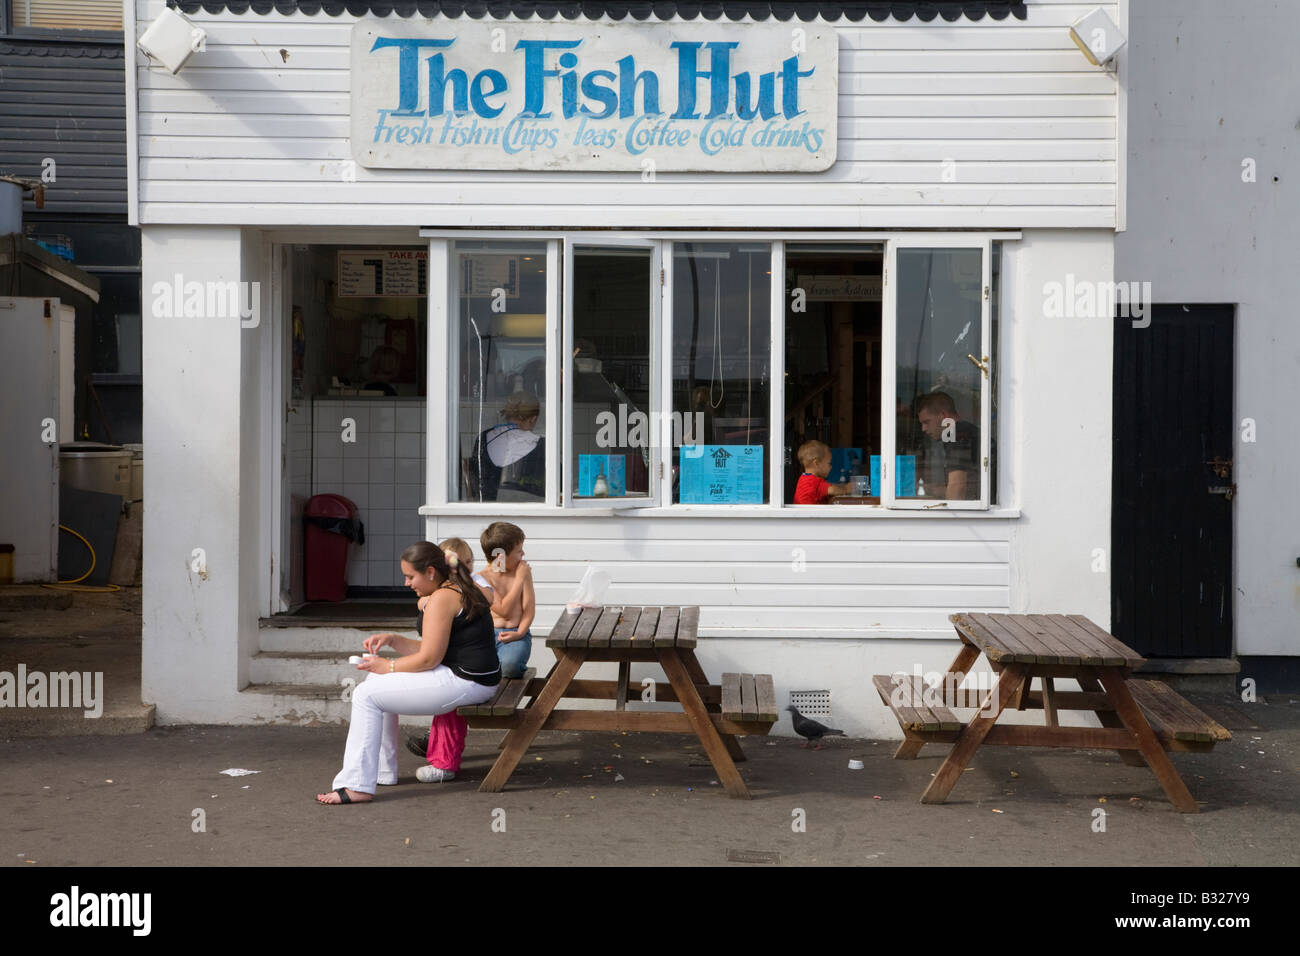 Fish and chip restaurant, Rock-a-Nore area, Hastings, East Sussex, England - Stock Image